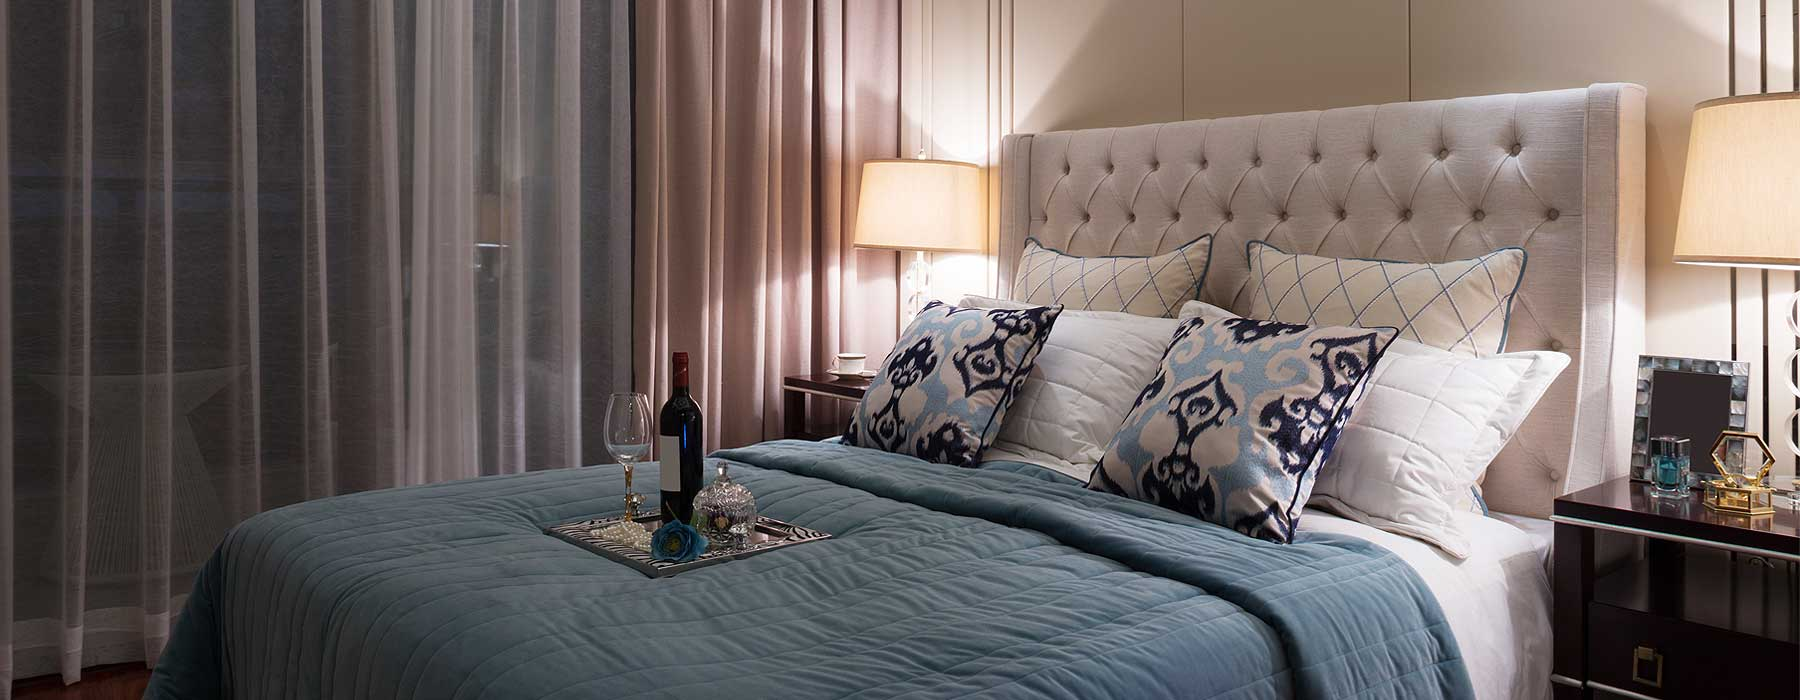 Explore our wide selection of elegant bedroom pieces, including custom-made storage beds and bedheads.